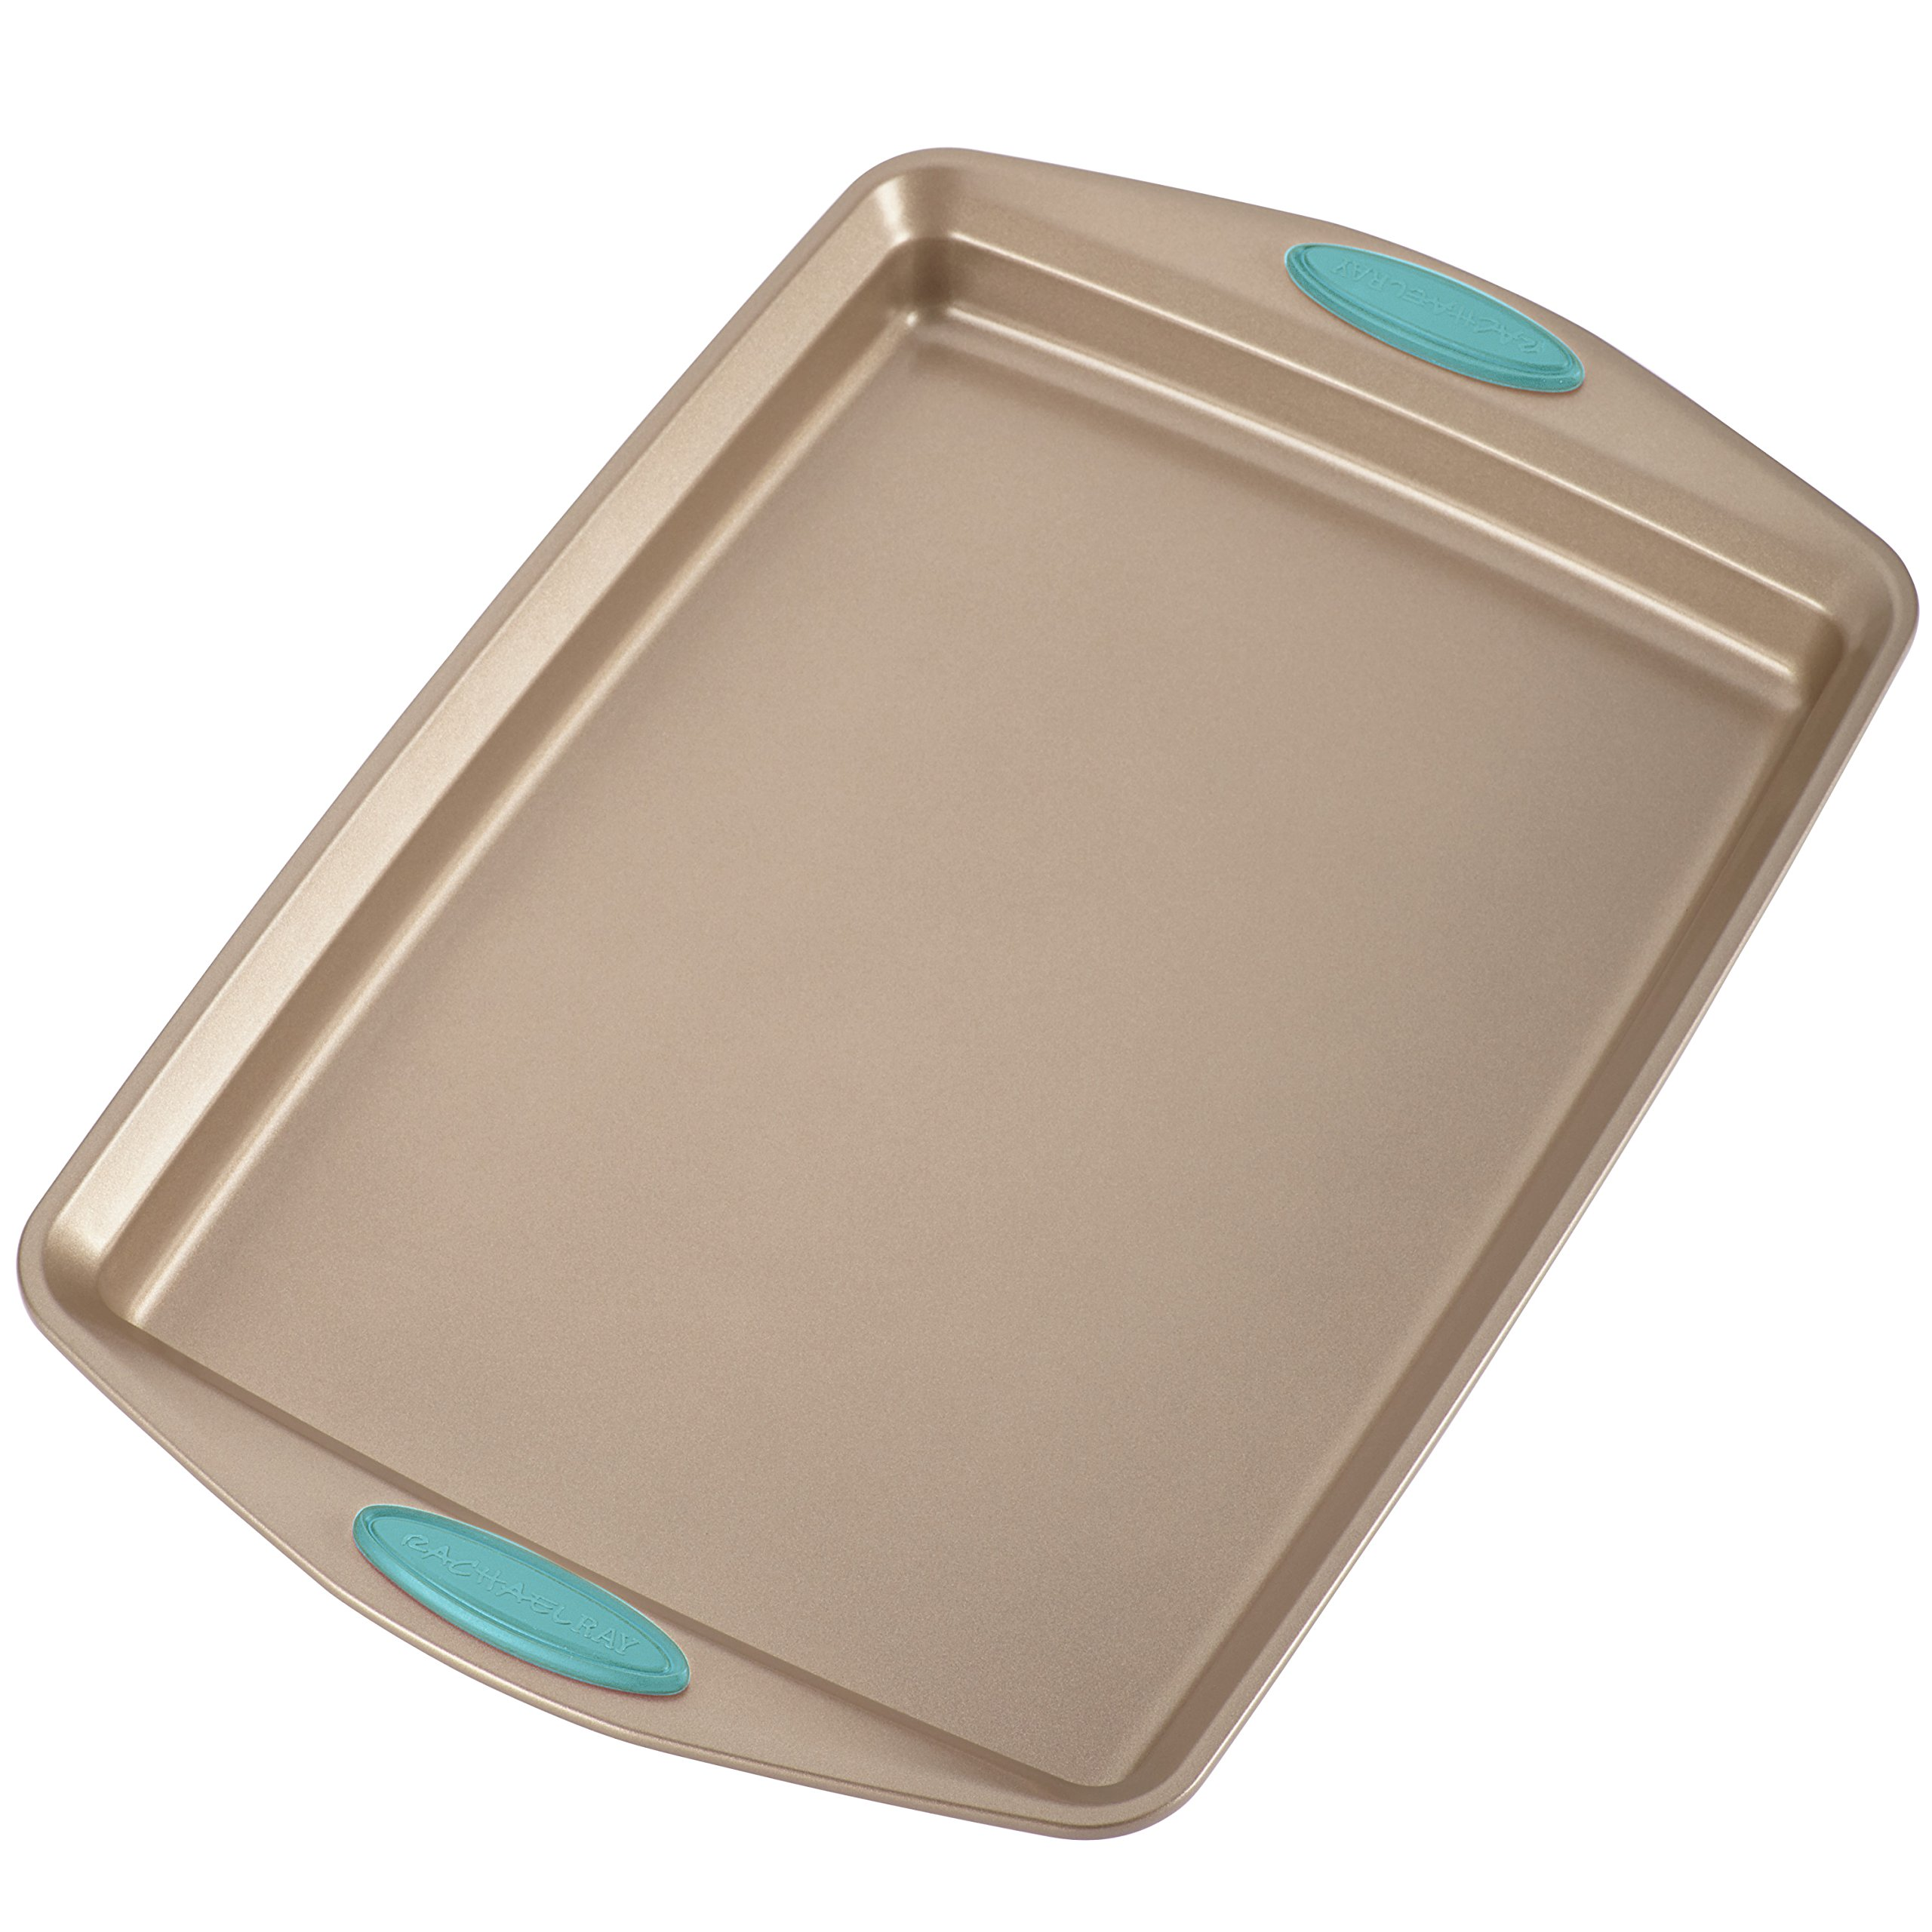 Rachael Ray Nonstick Bakeware 5-Piece Set, Latte Brown with Agave Blue Handle Grips by Rachael Ray (Image #2)